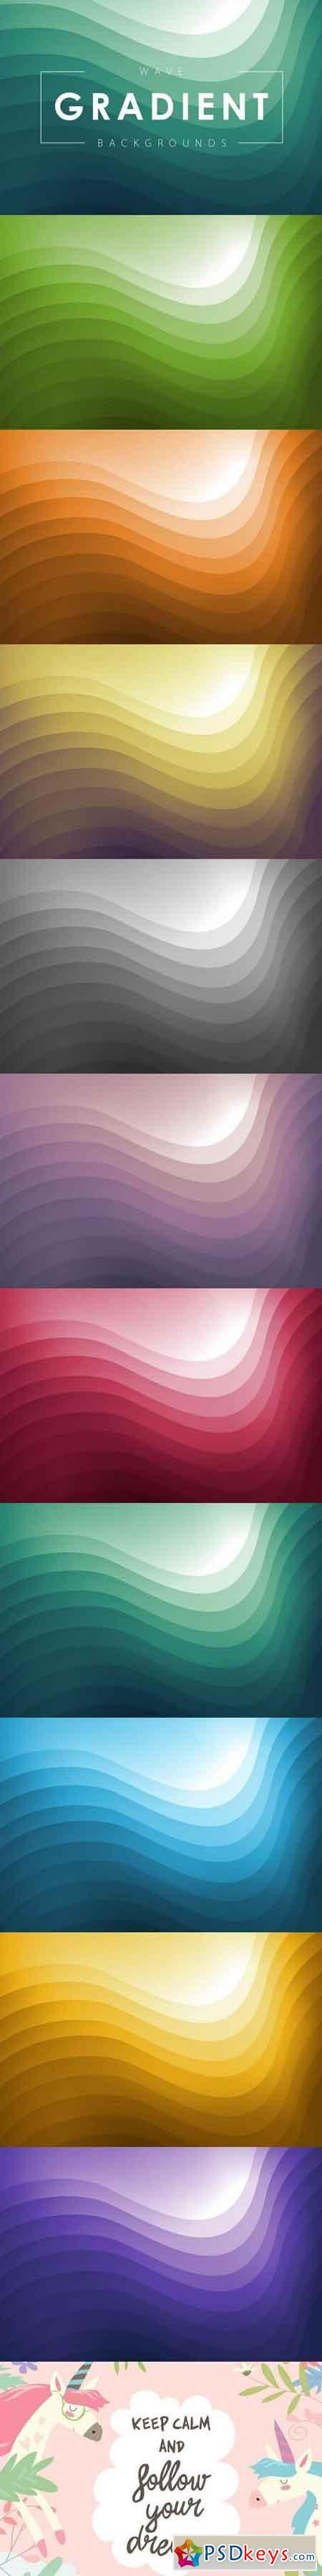 Wave Gradient Backgrounds